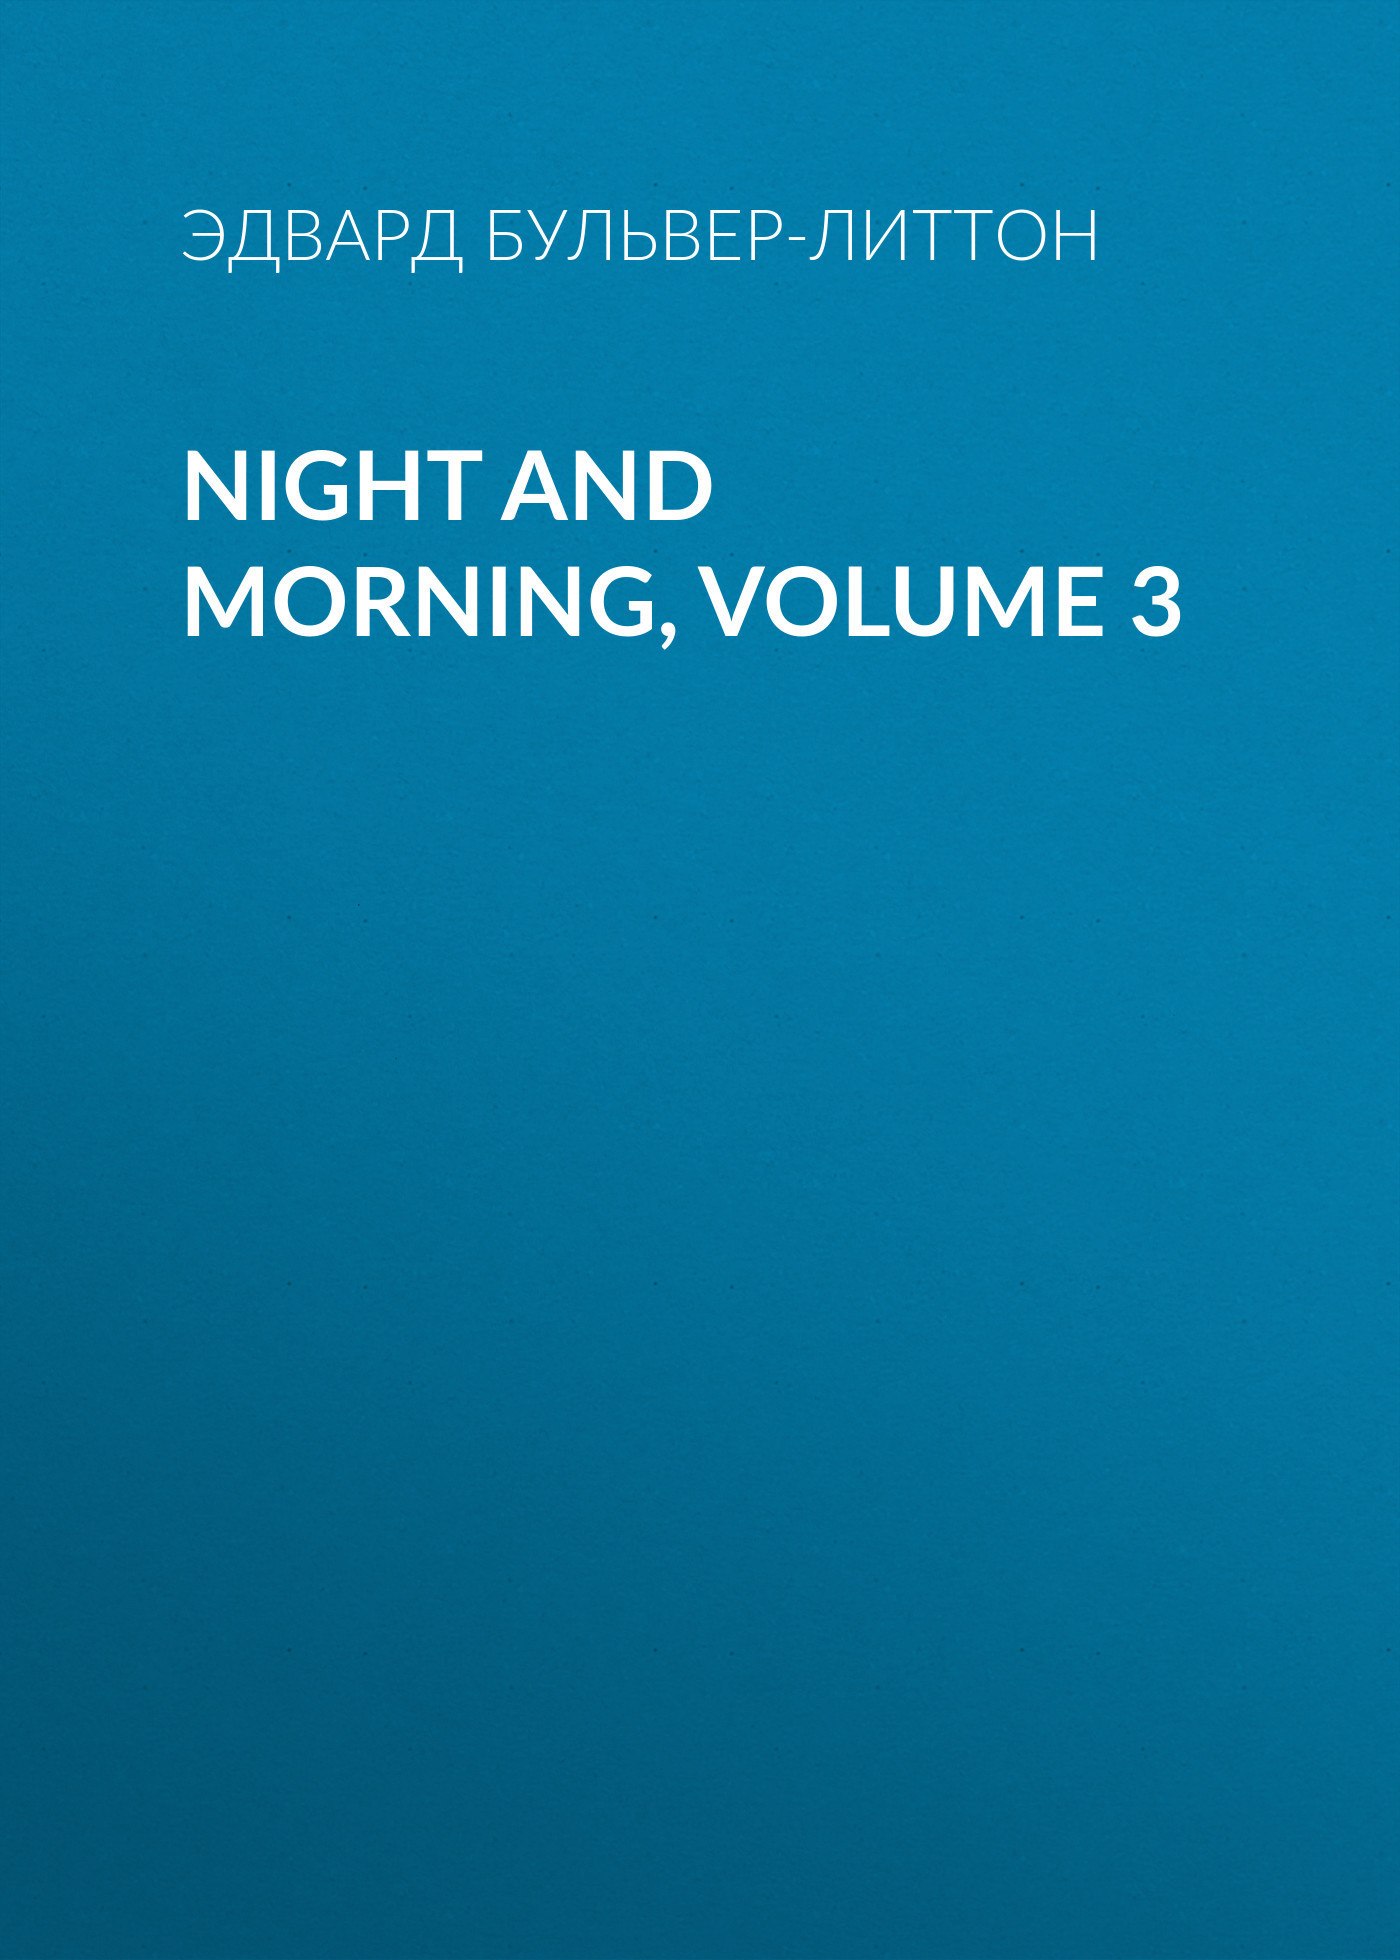 Эдвард Бульвер-Литтон Night and Morning, Volume 3 inhuman volume 3